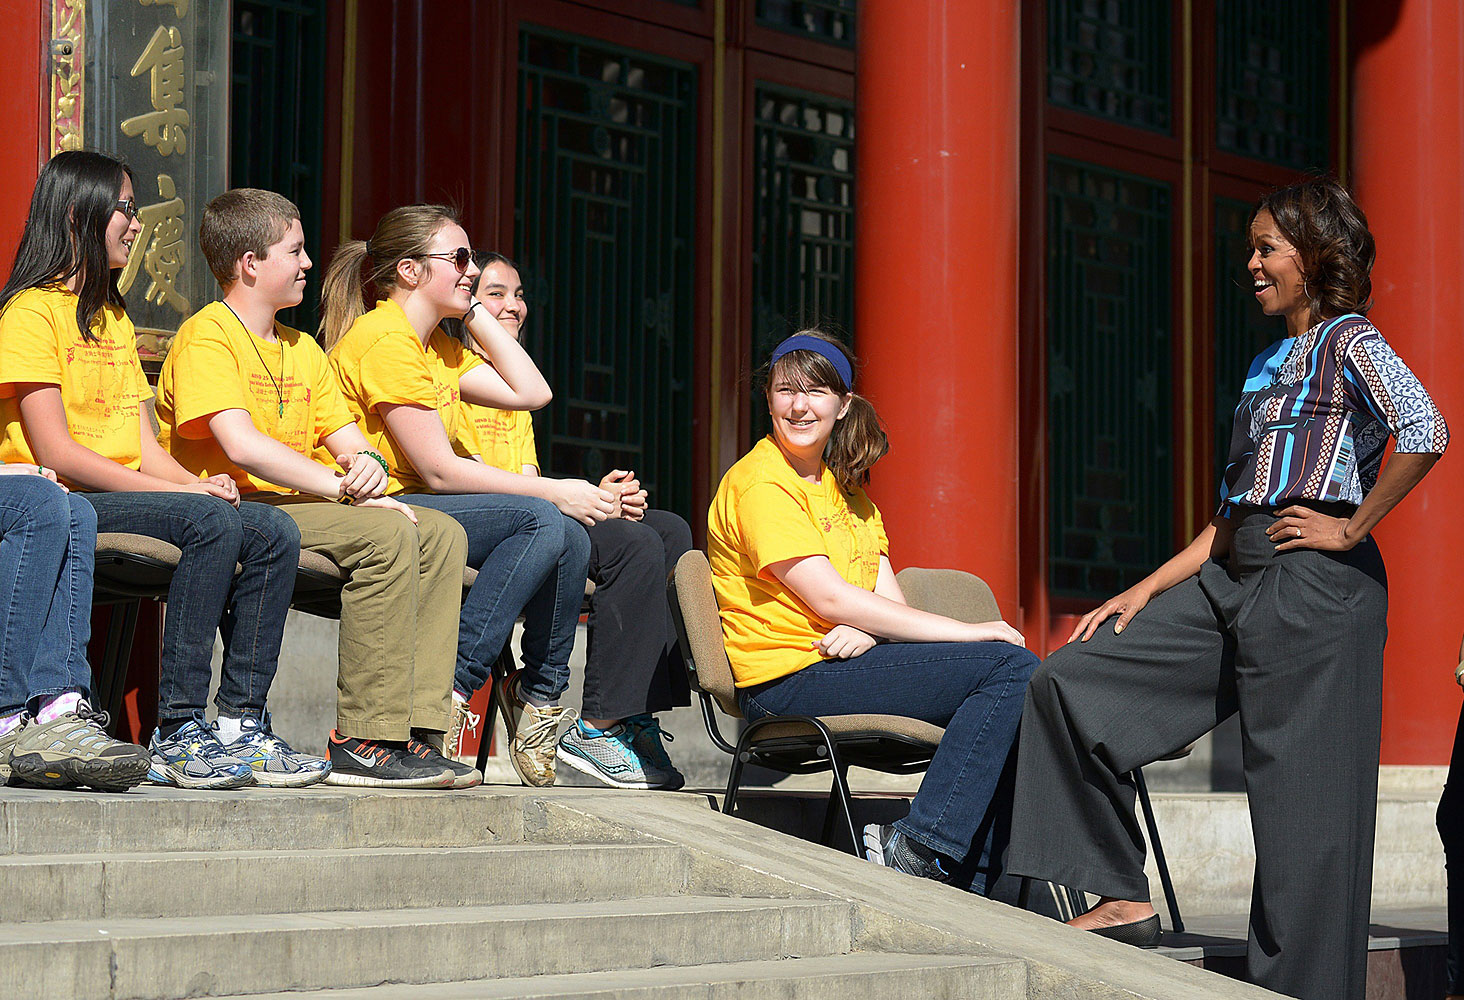 Wearing flared trousers and a patterned top, the First Lady speaks to a group of students from Chicago during her visit to the Summer Palace in Beijing on March 22, 2014.